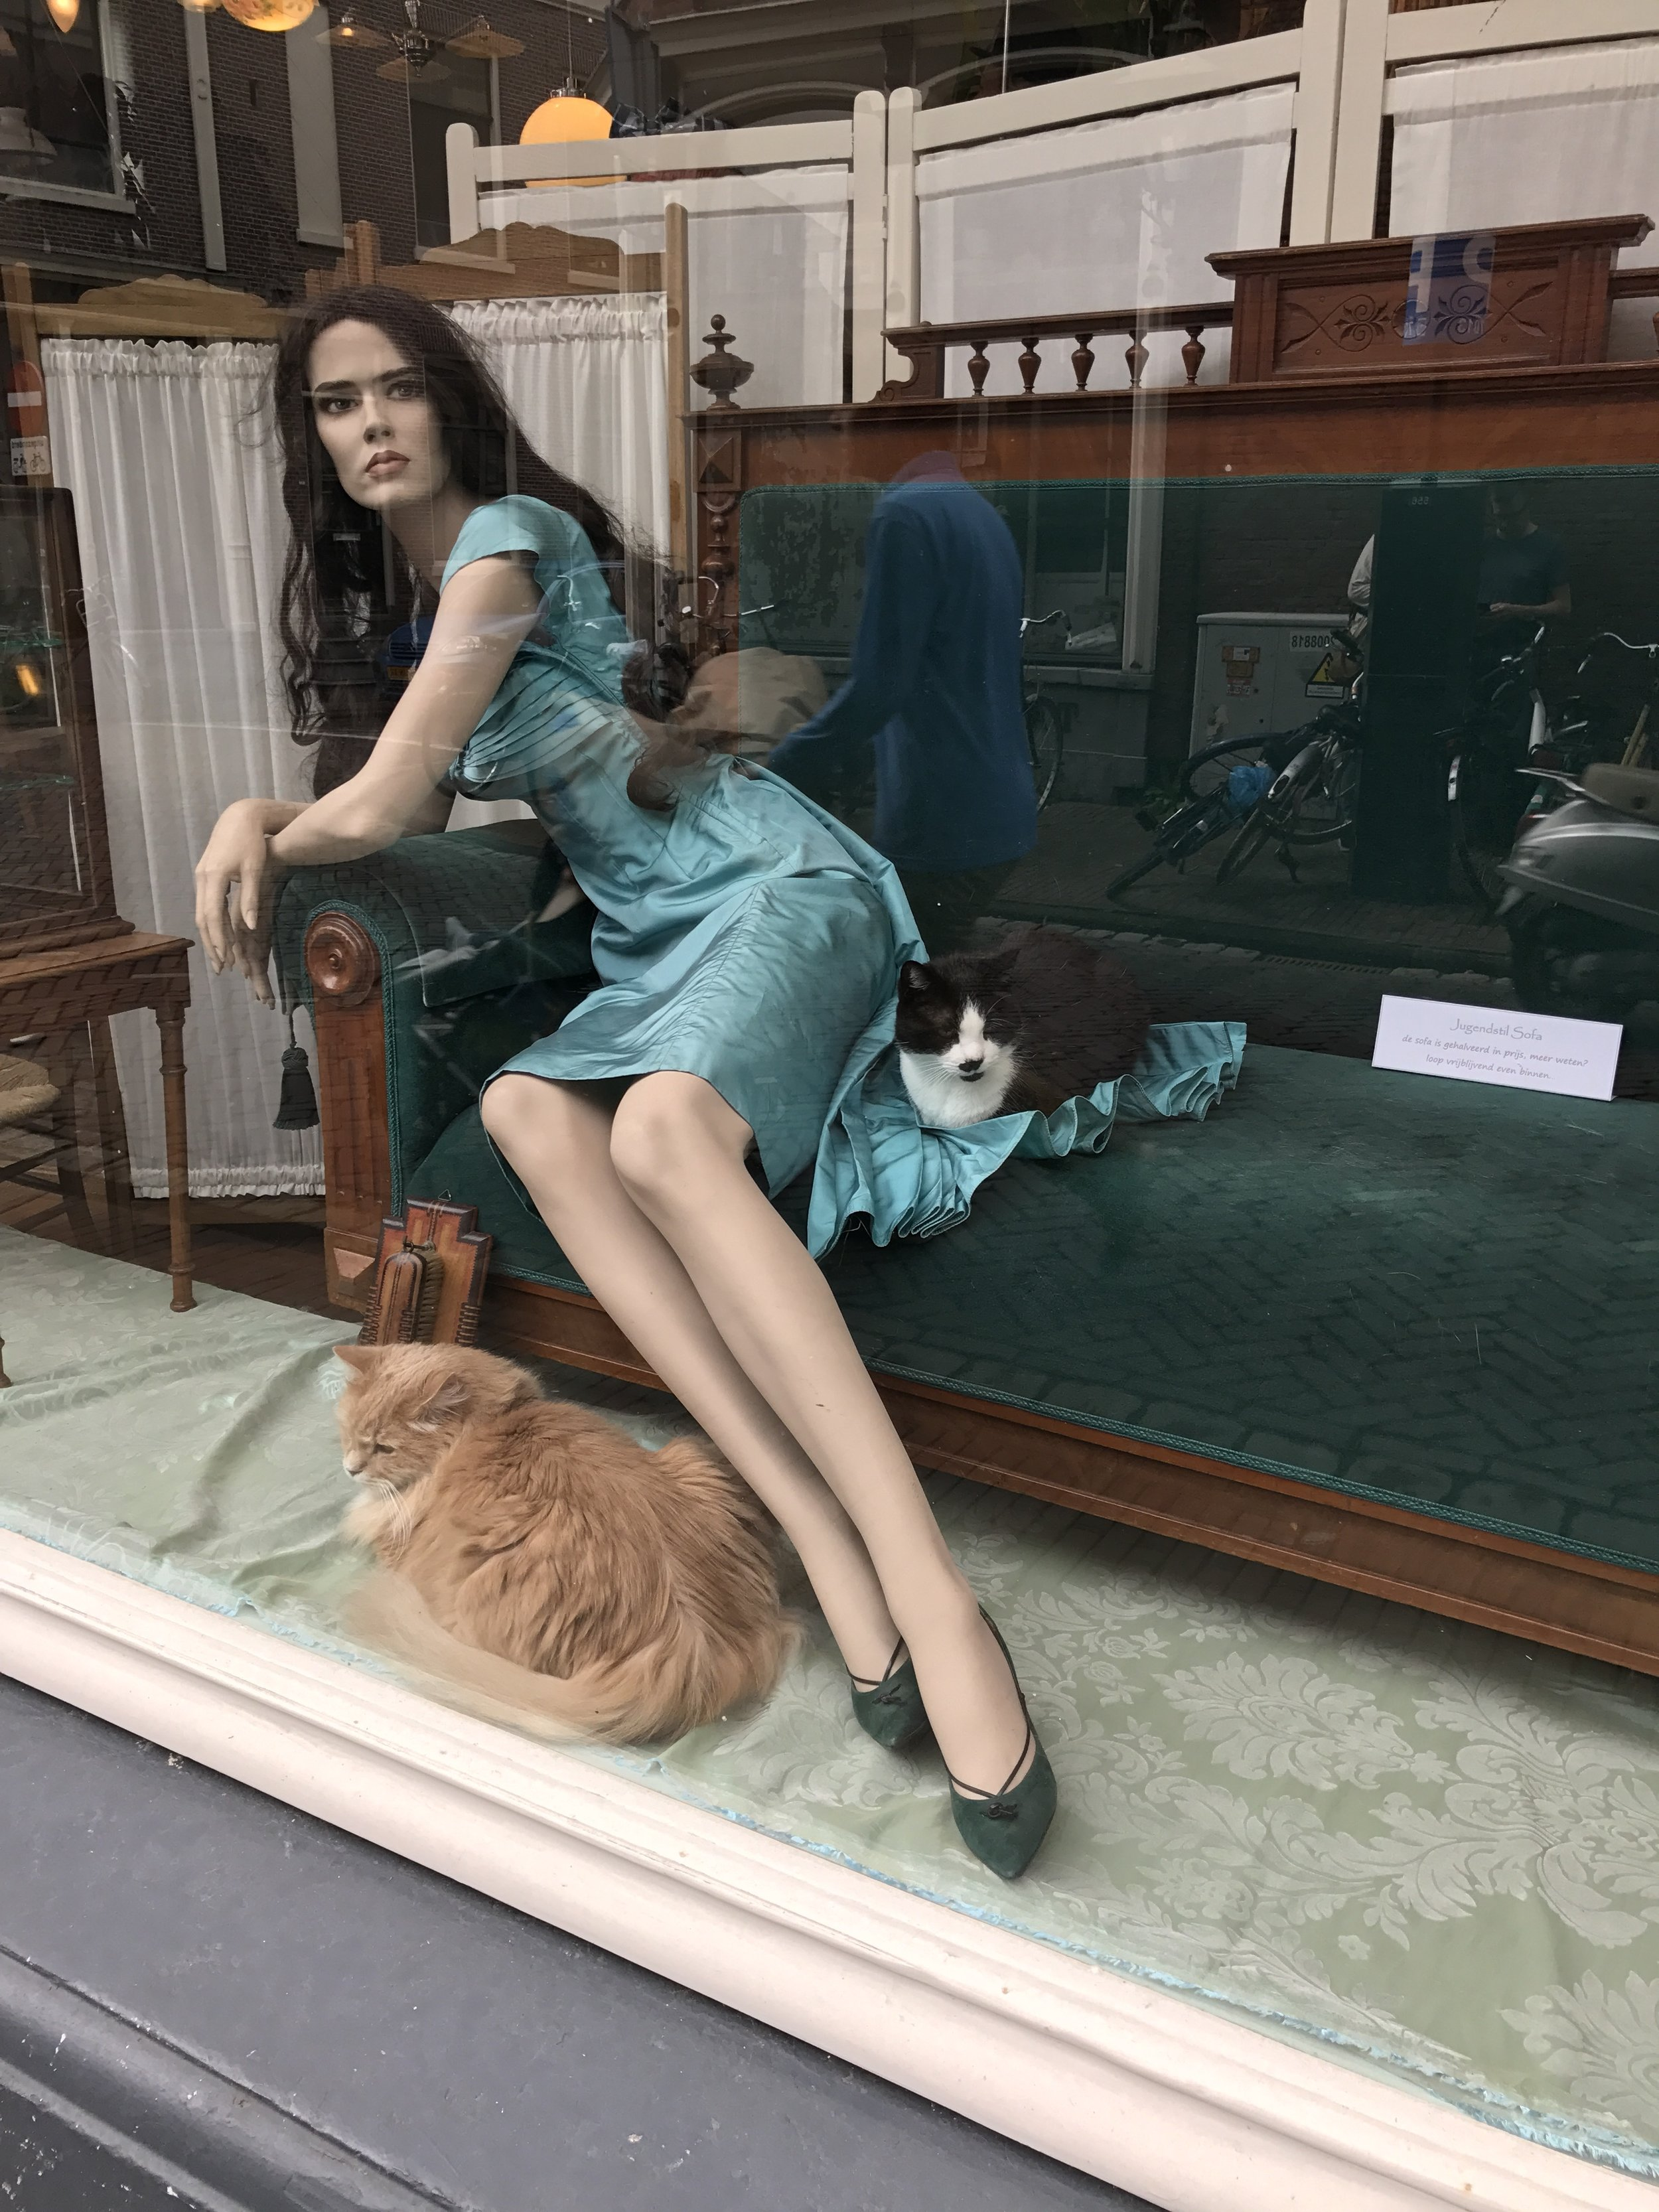 The owners cats take pride of place next to the shop model in a creative viginette !!!